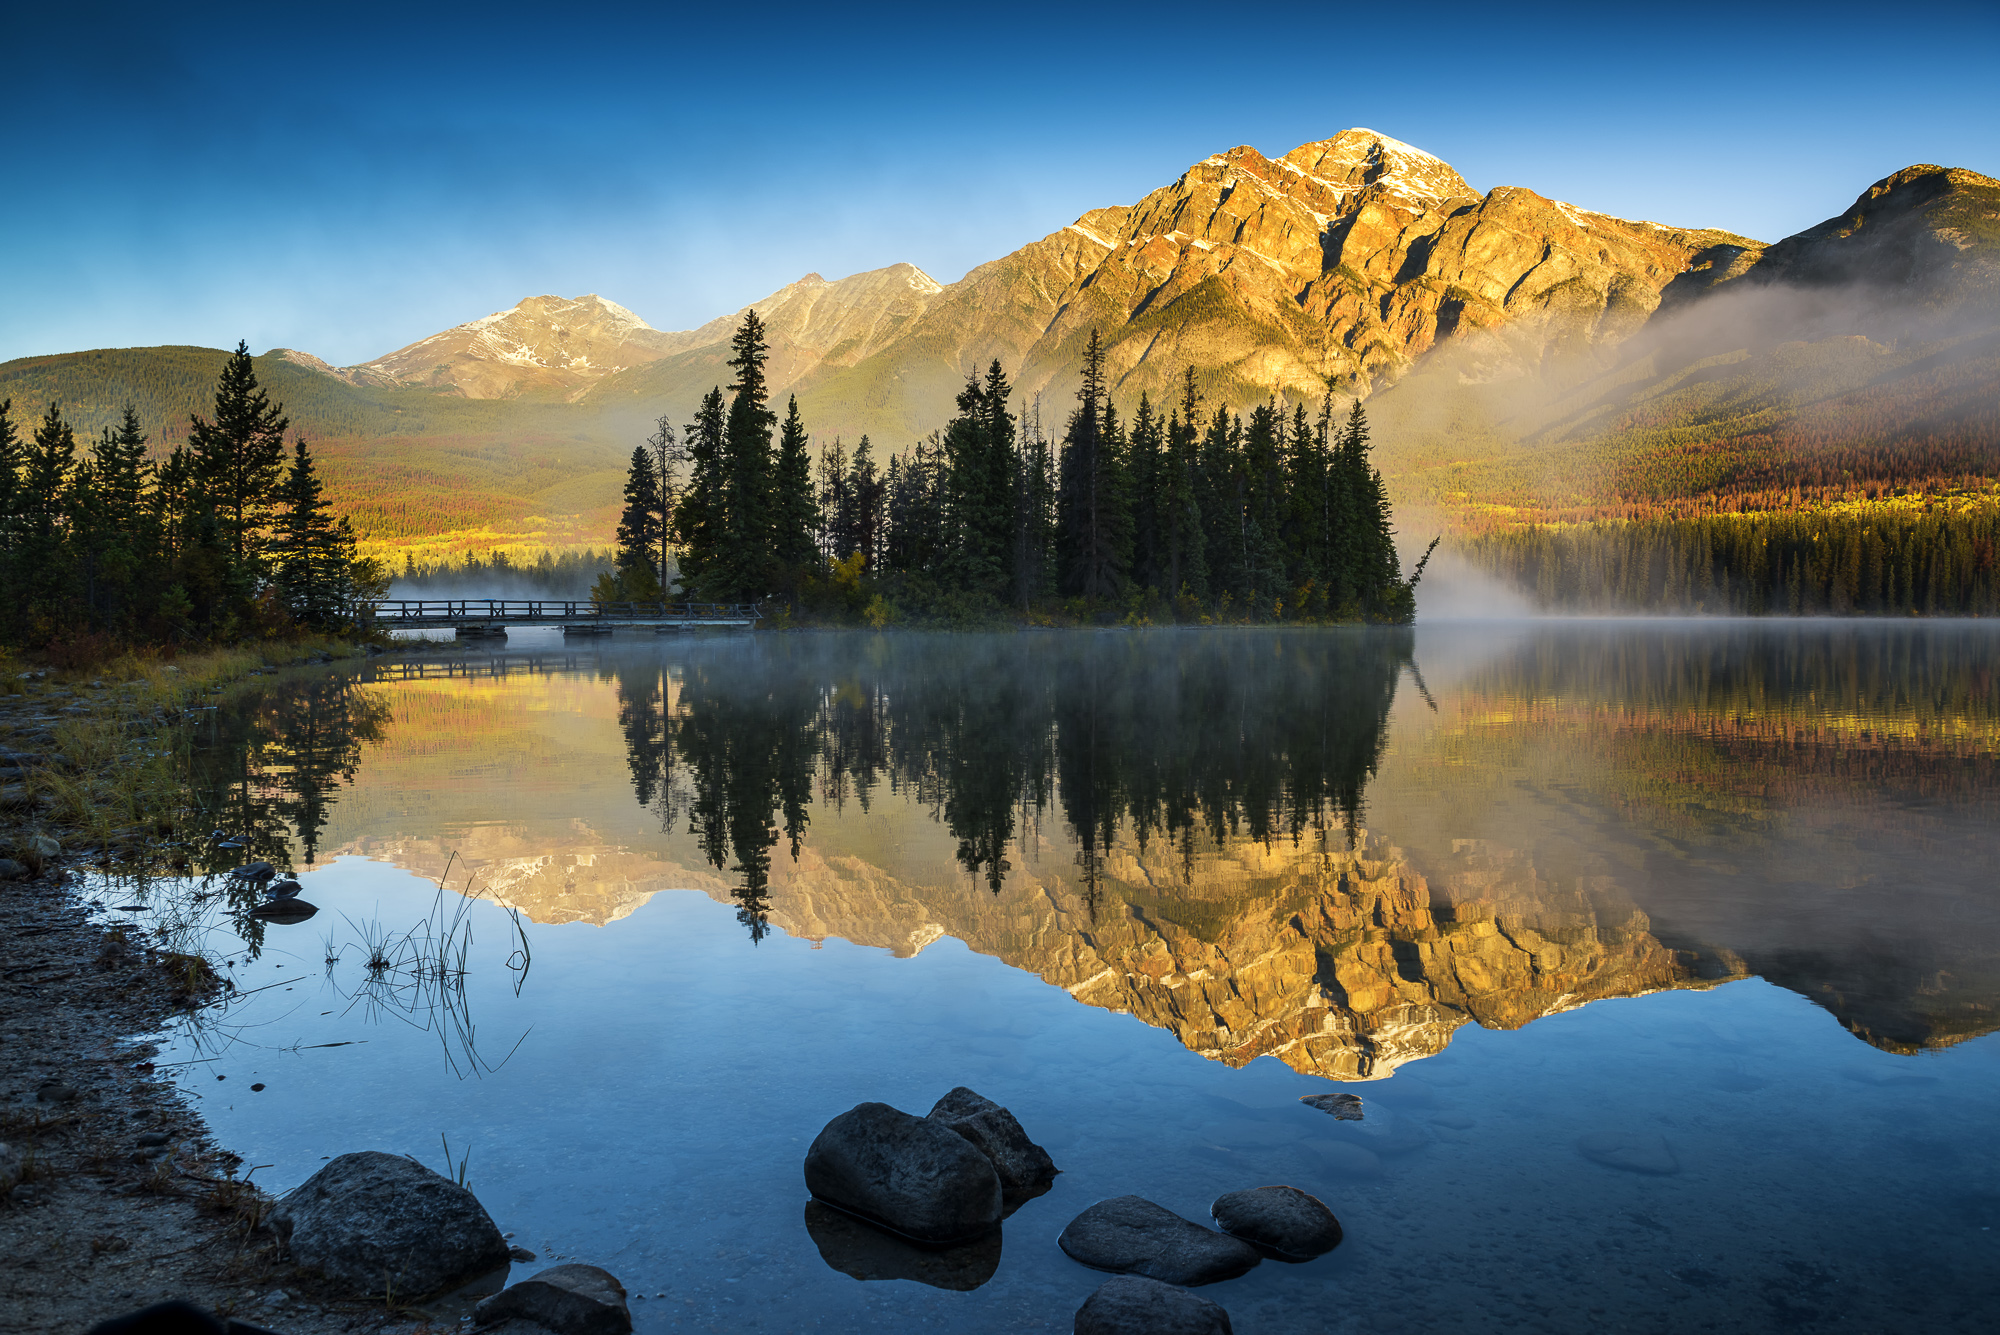 Mist on Pyramid Lake, Jasper National Park, Alberta, Canada